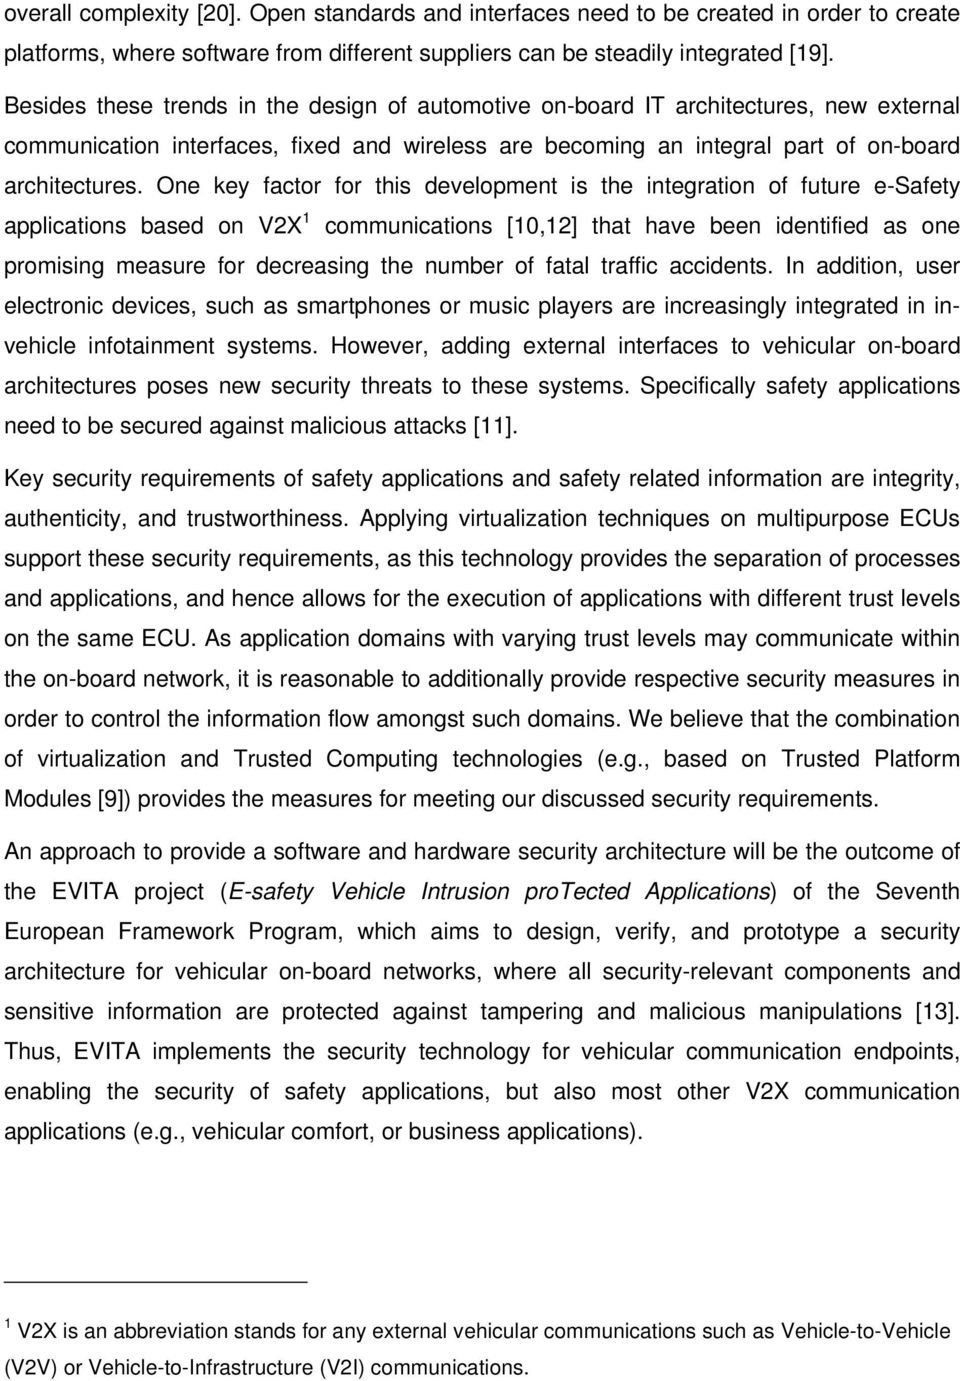 One key factor for this development is the integration of future e-safety applications based on V2X 1 communications [10,12] that have been identified as one promising measure for decreasing the